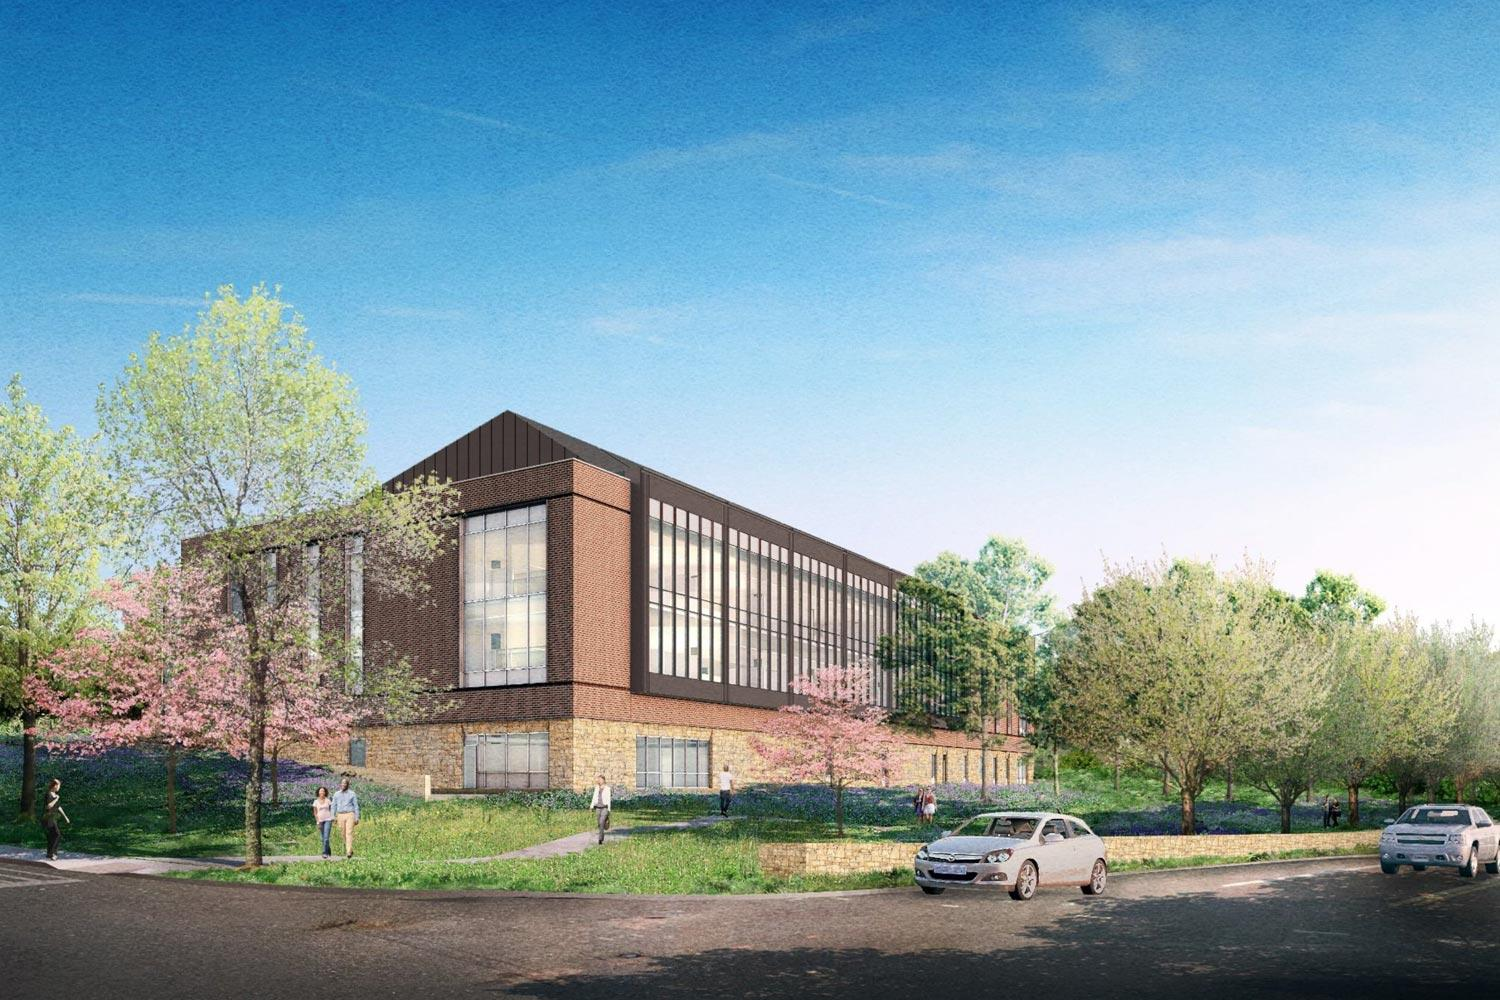 Groundbreaking for the planned orthopedic center is expected in September.